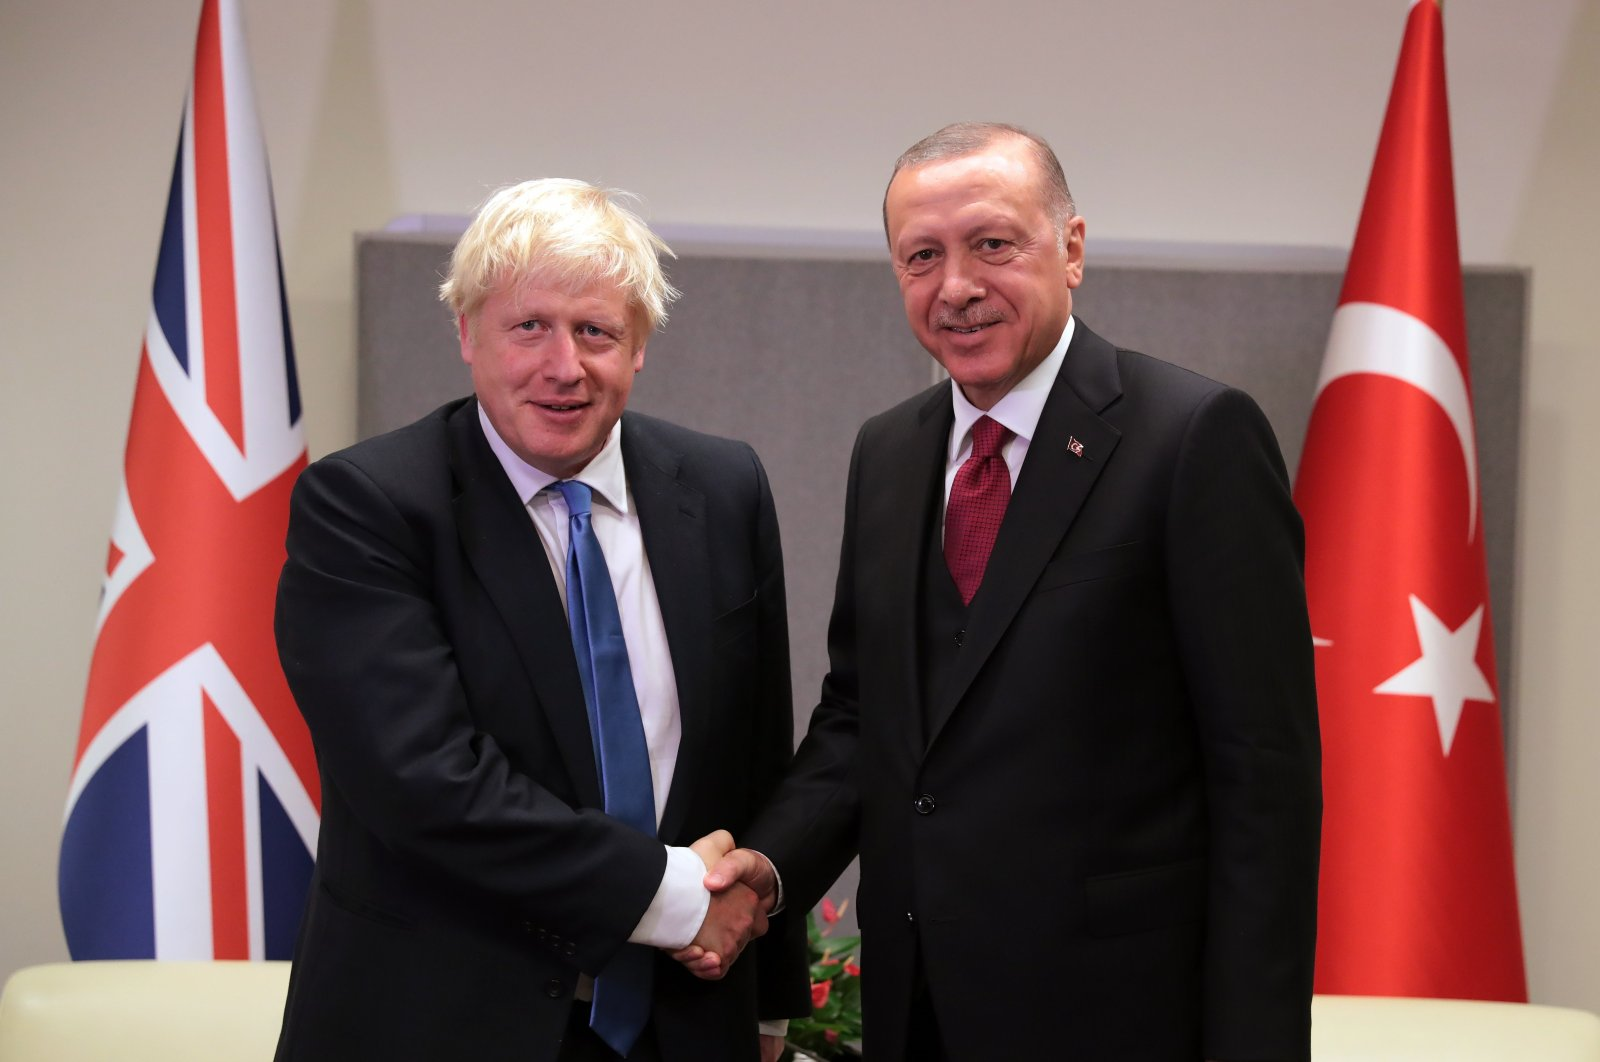 President Recep Tayyip Erdoğan (R) shakes hands with British Prime Minister Boris Johnson within the 74th session the U.N. General Assembly in New York, U.S., Sept. 24, 2019.(IHA Photo)